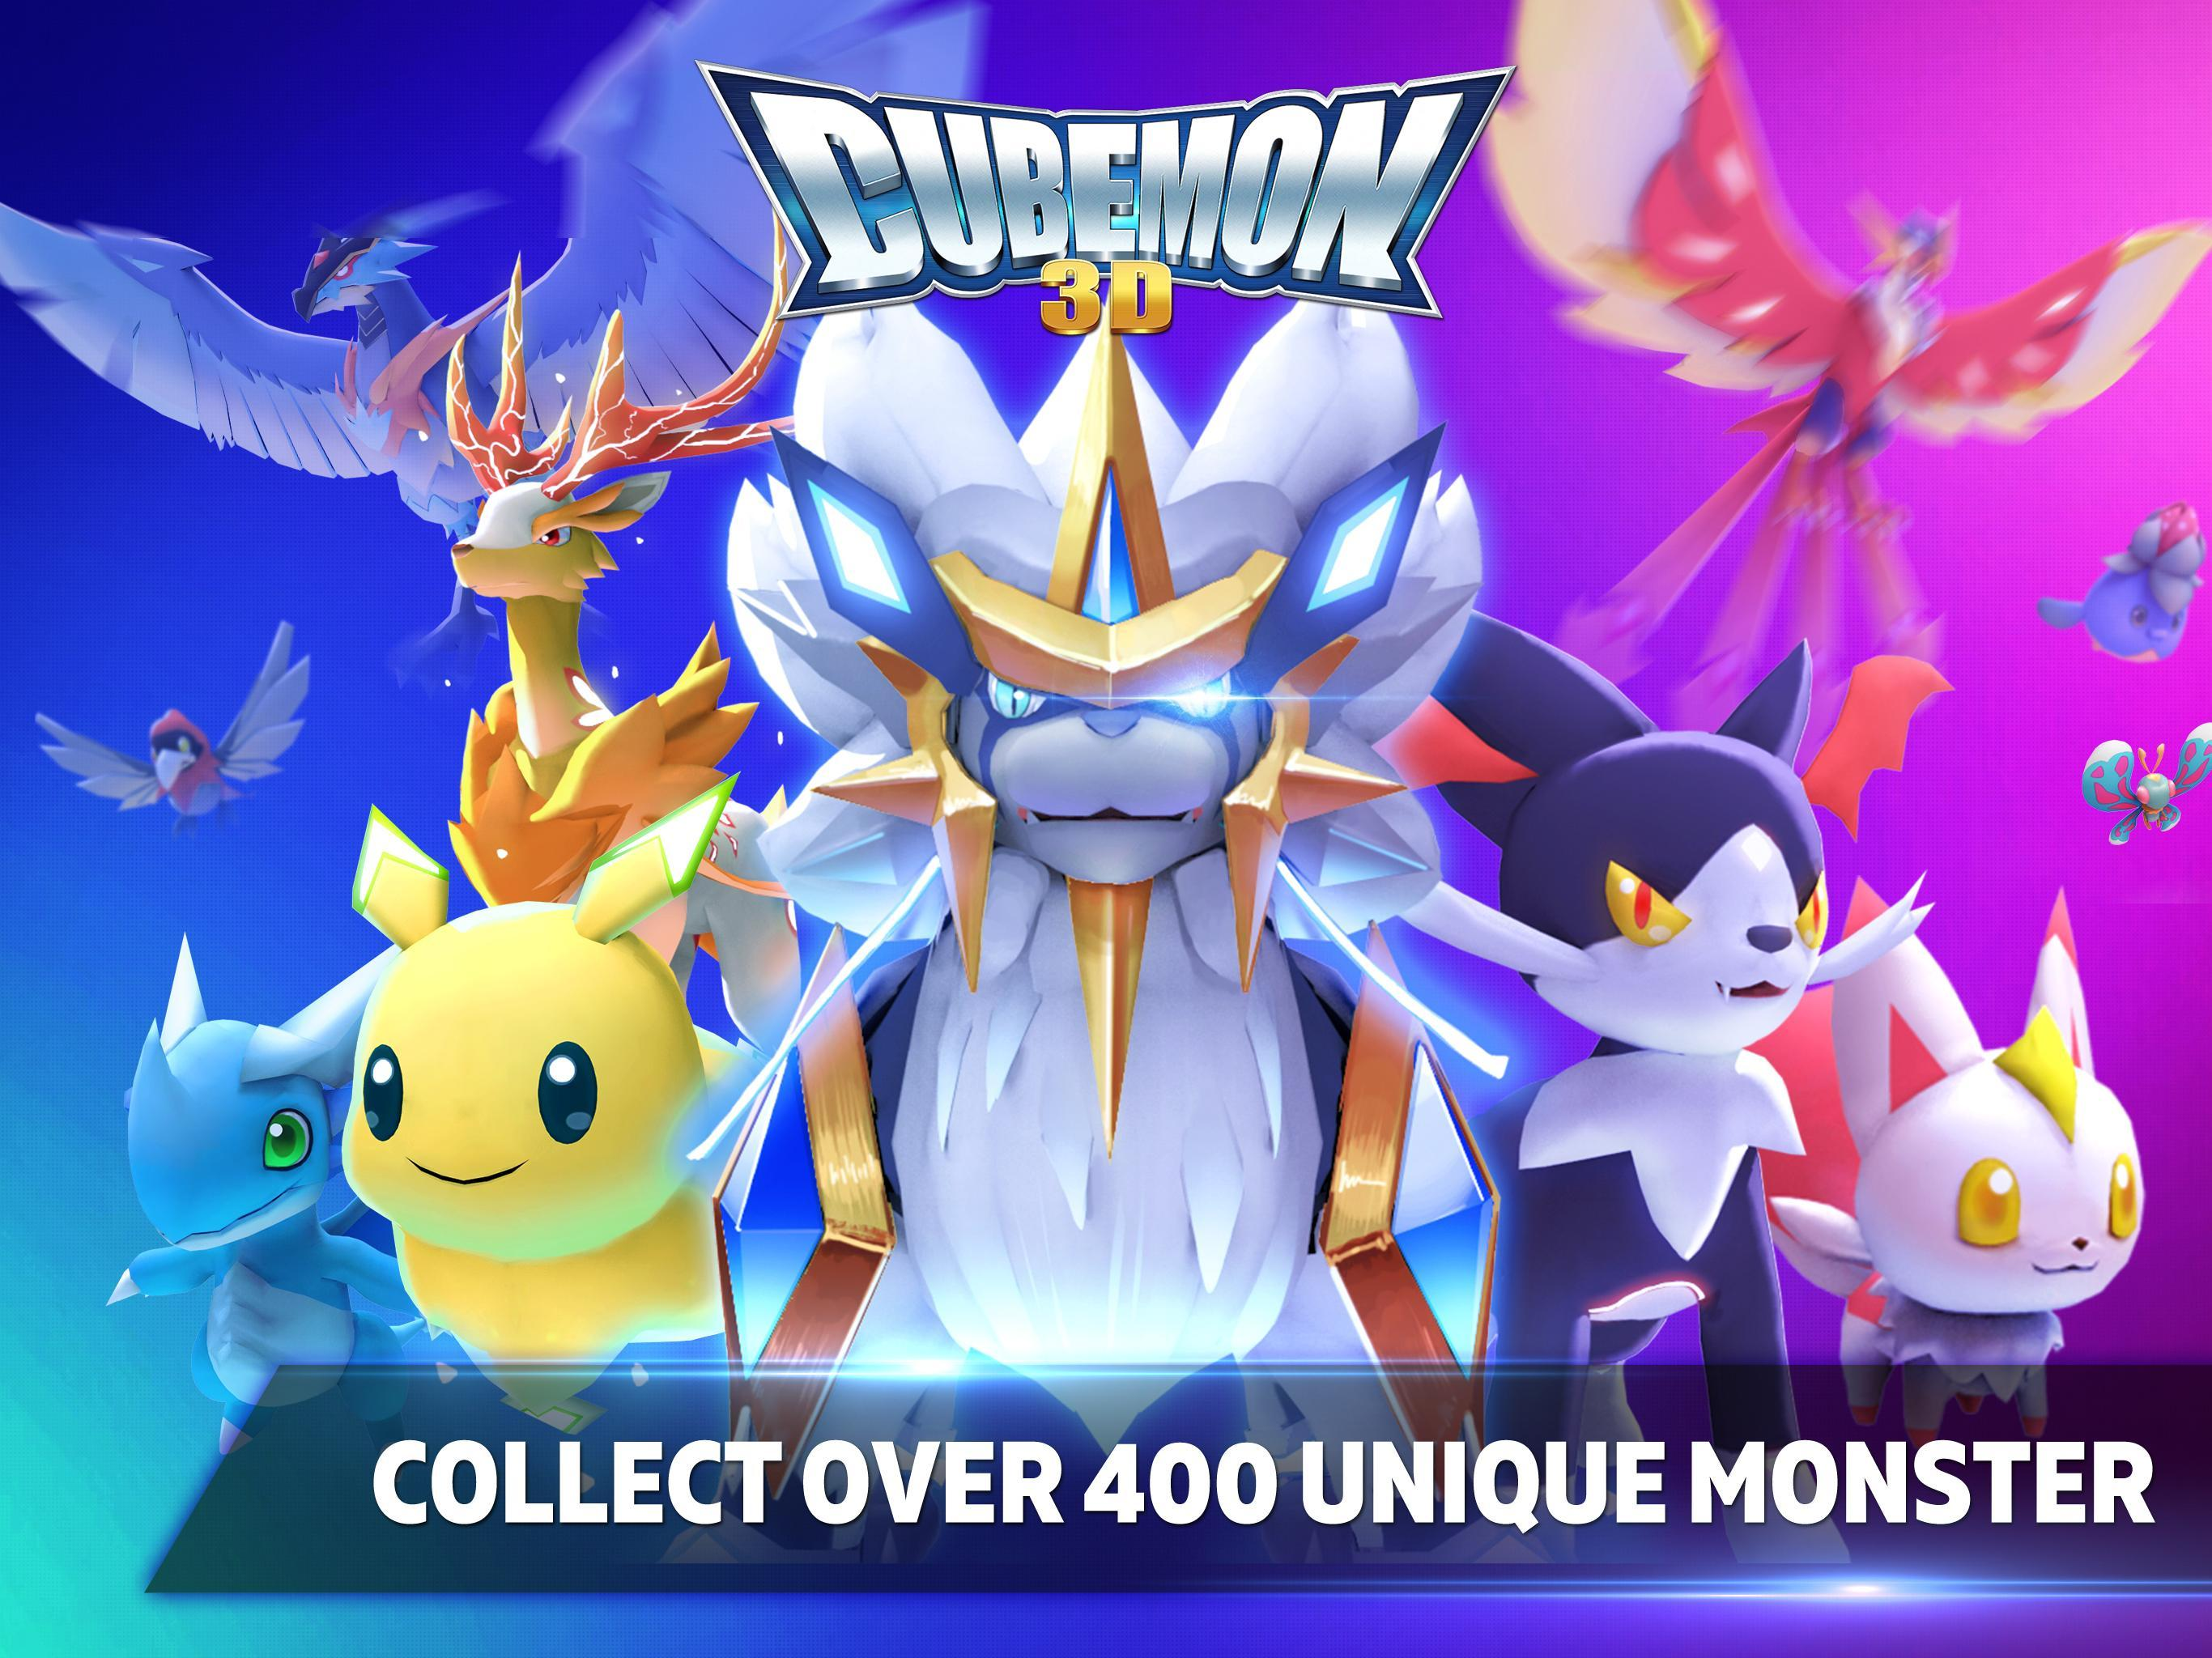 Cubemon 3D:MMORPG Monster Game for Android - APK Download